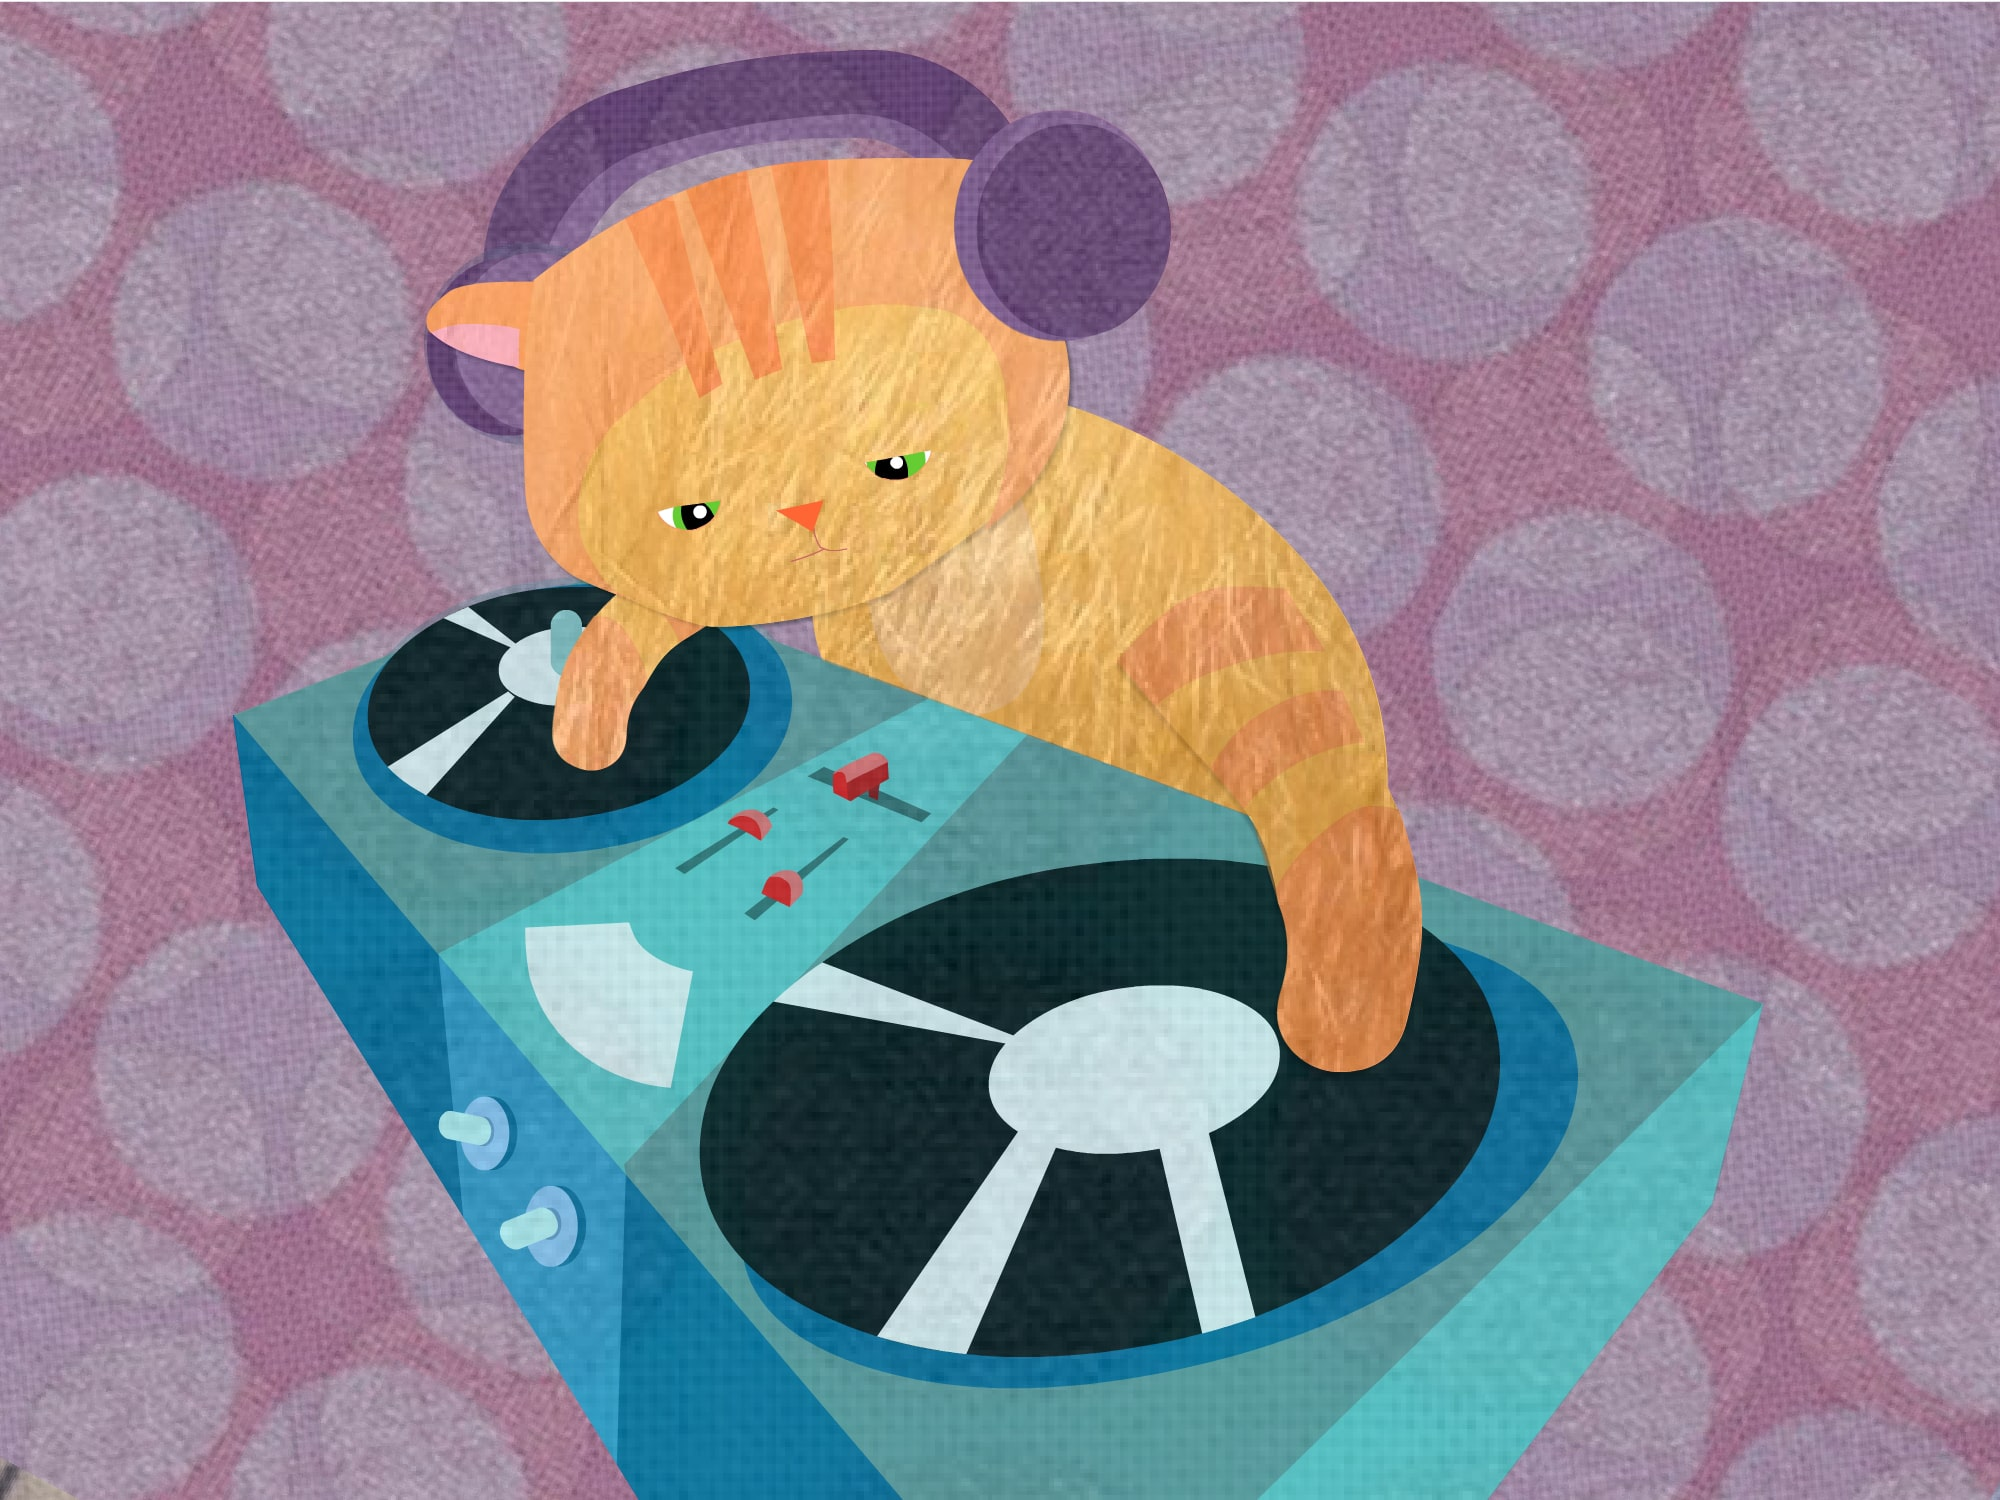 DJ cat illustration - Luella Jane